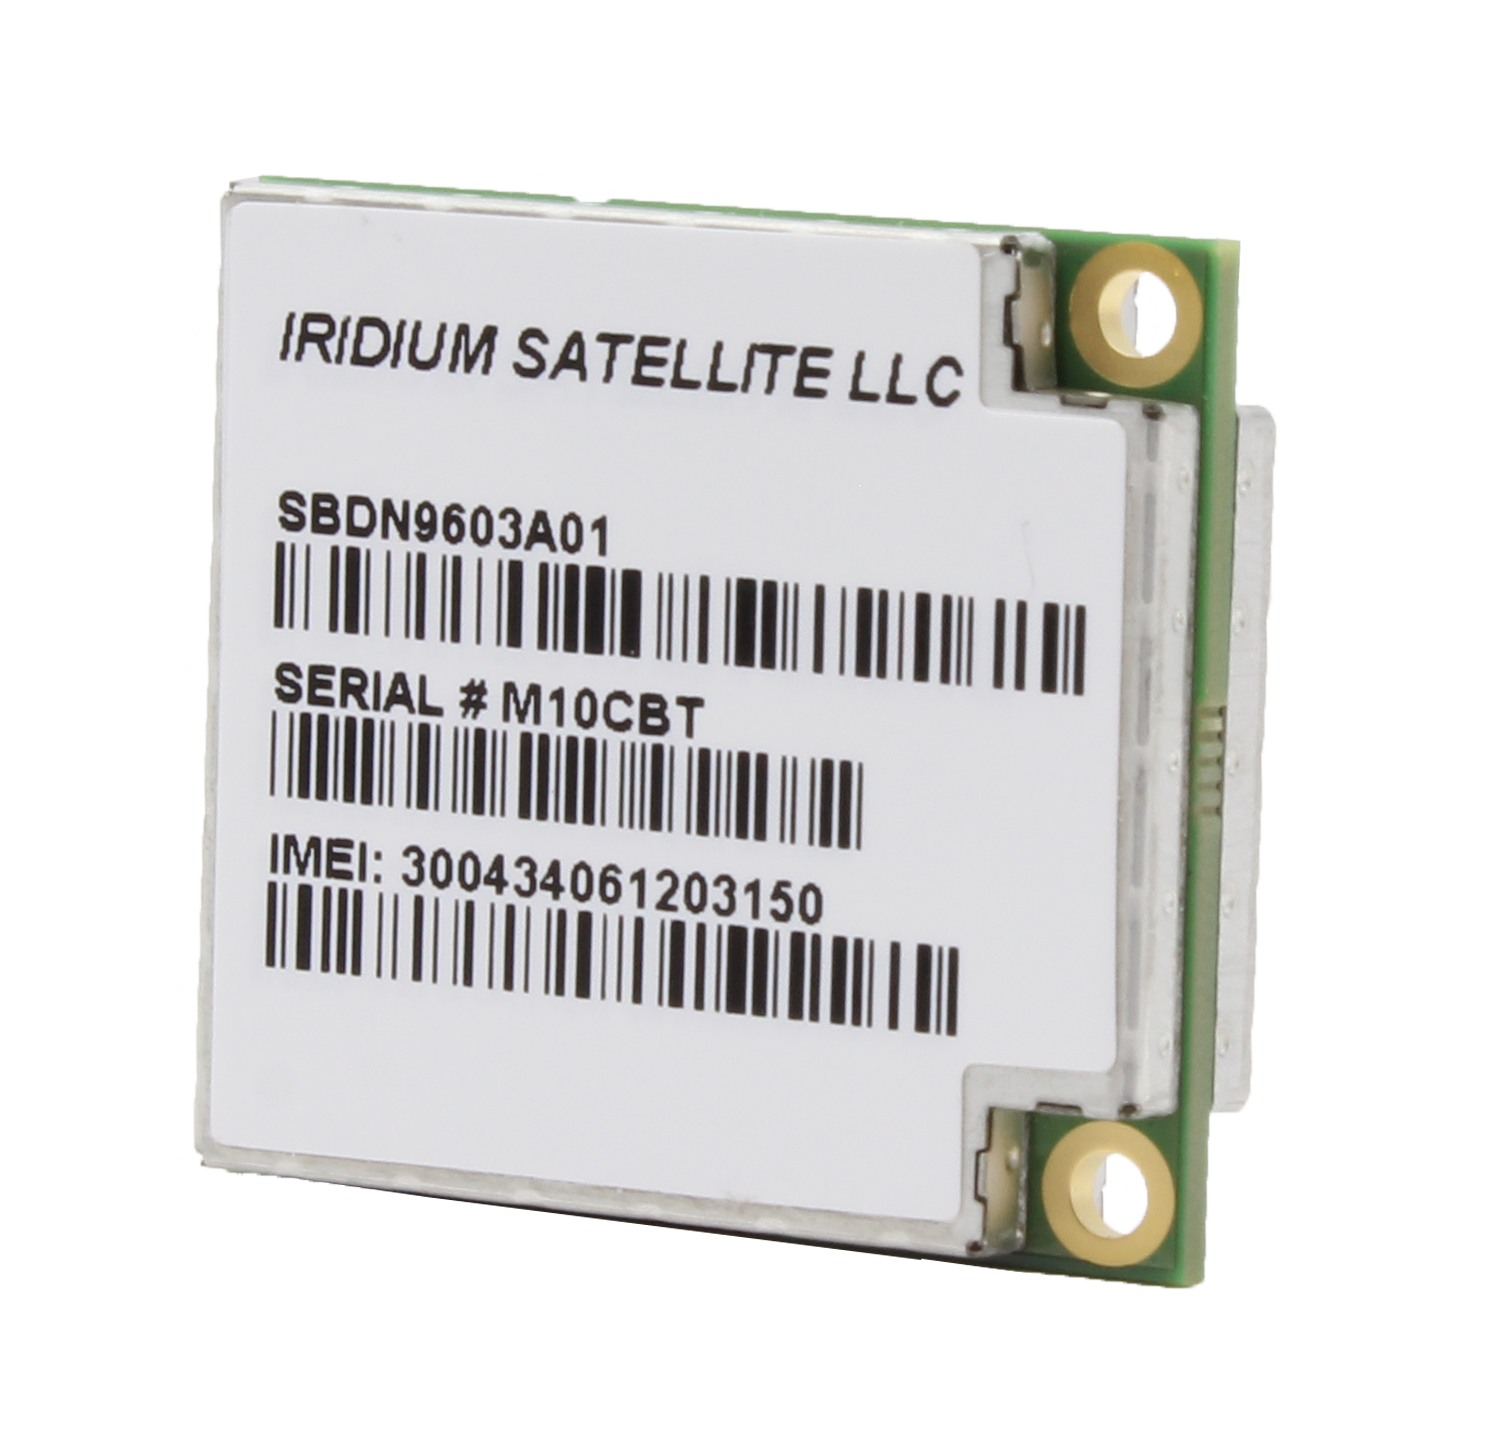 Iridium 9603 embedded transceiver.